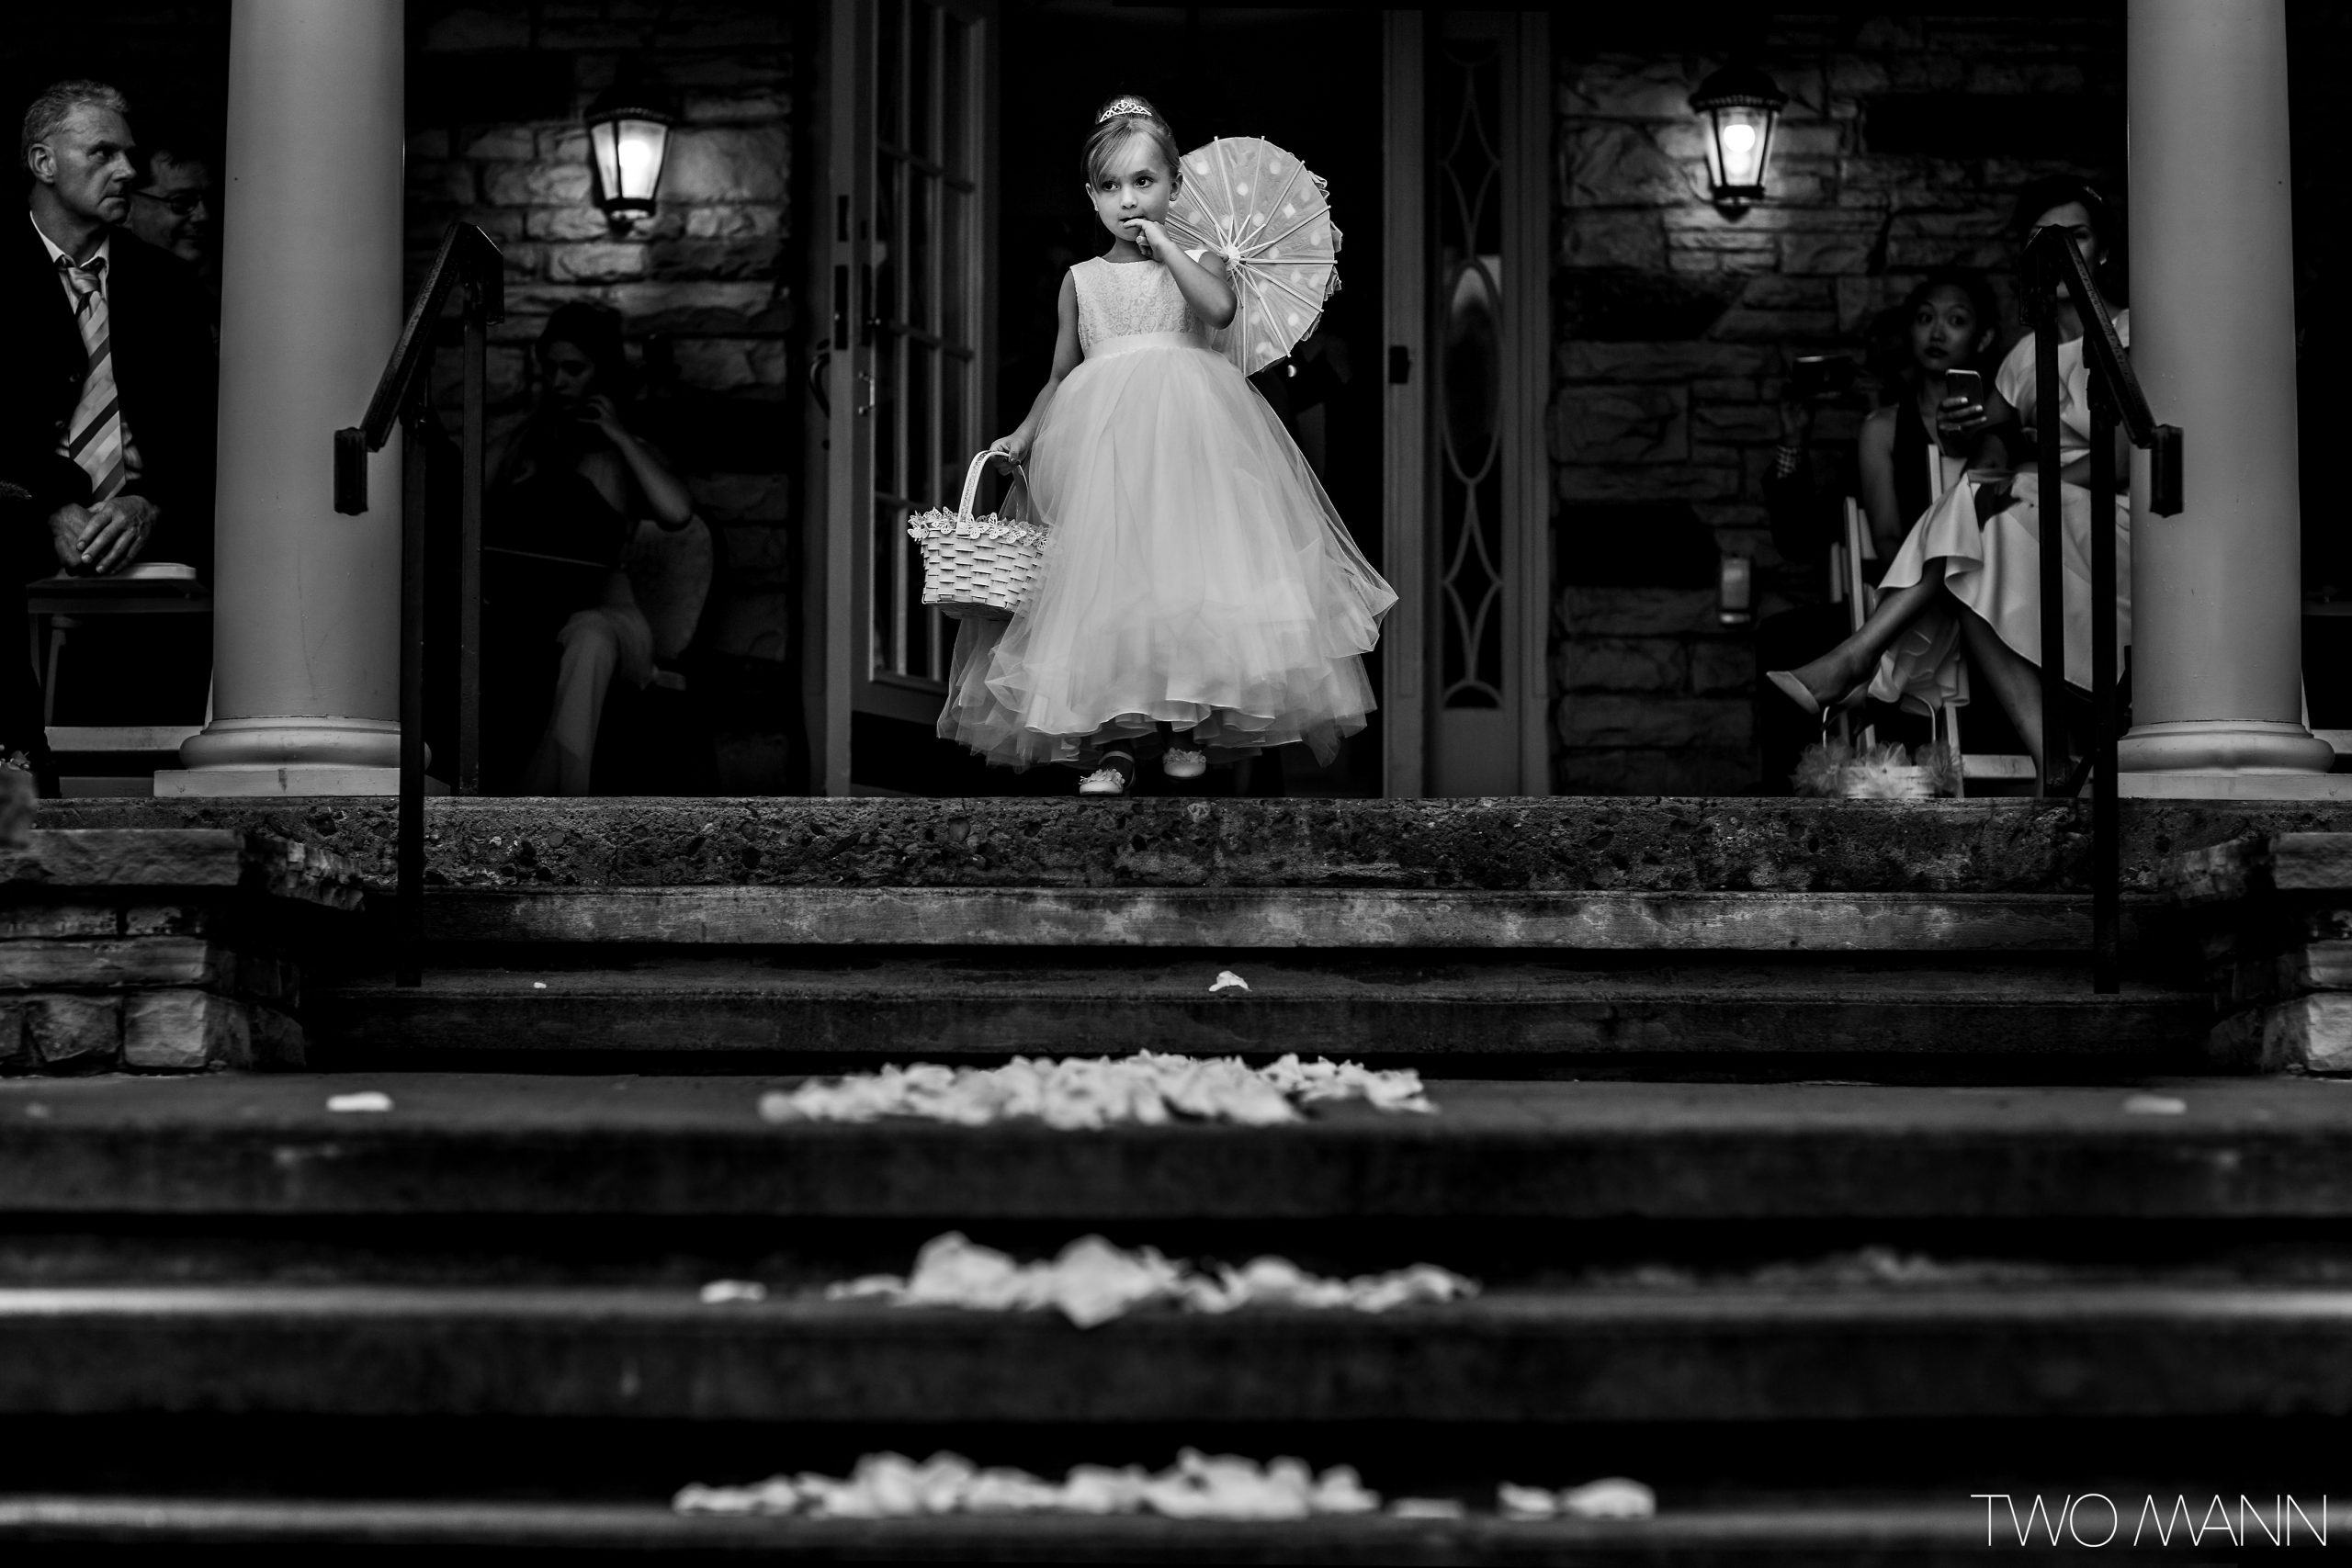 Young flower girl on top of steps prepares to walk down wedding aisle